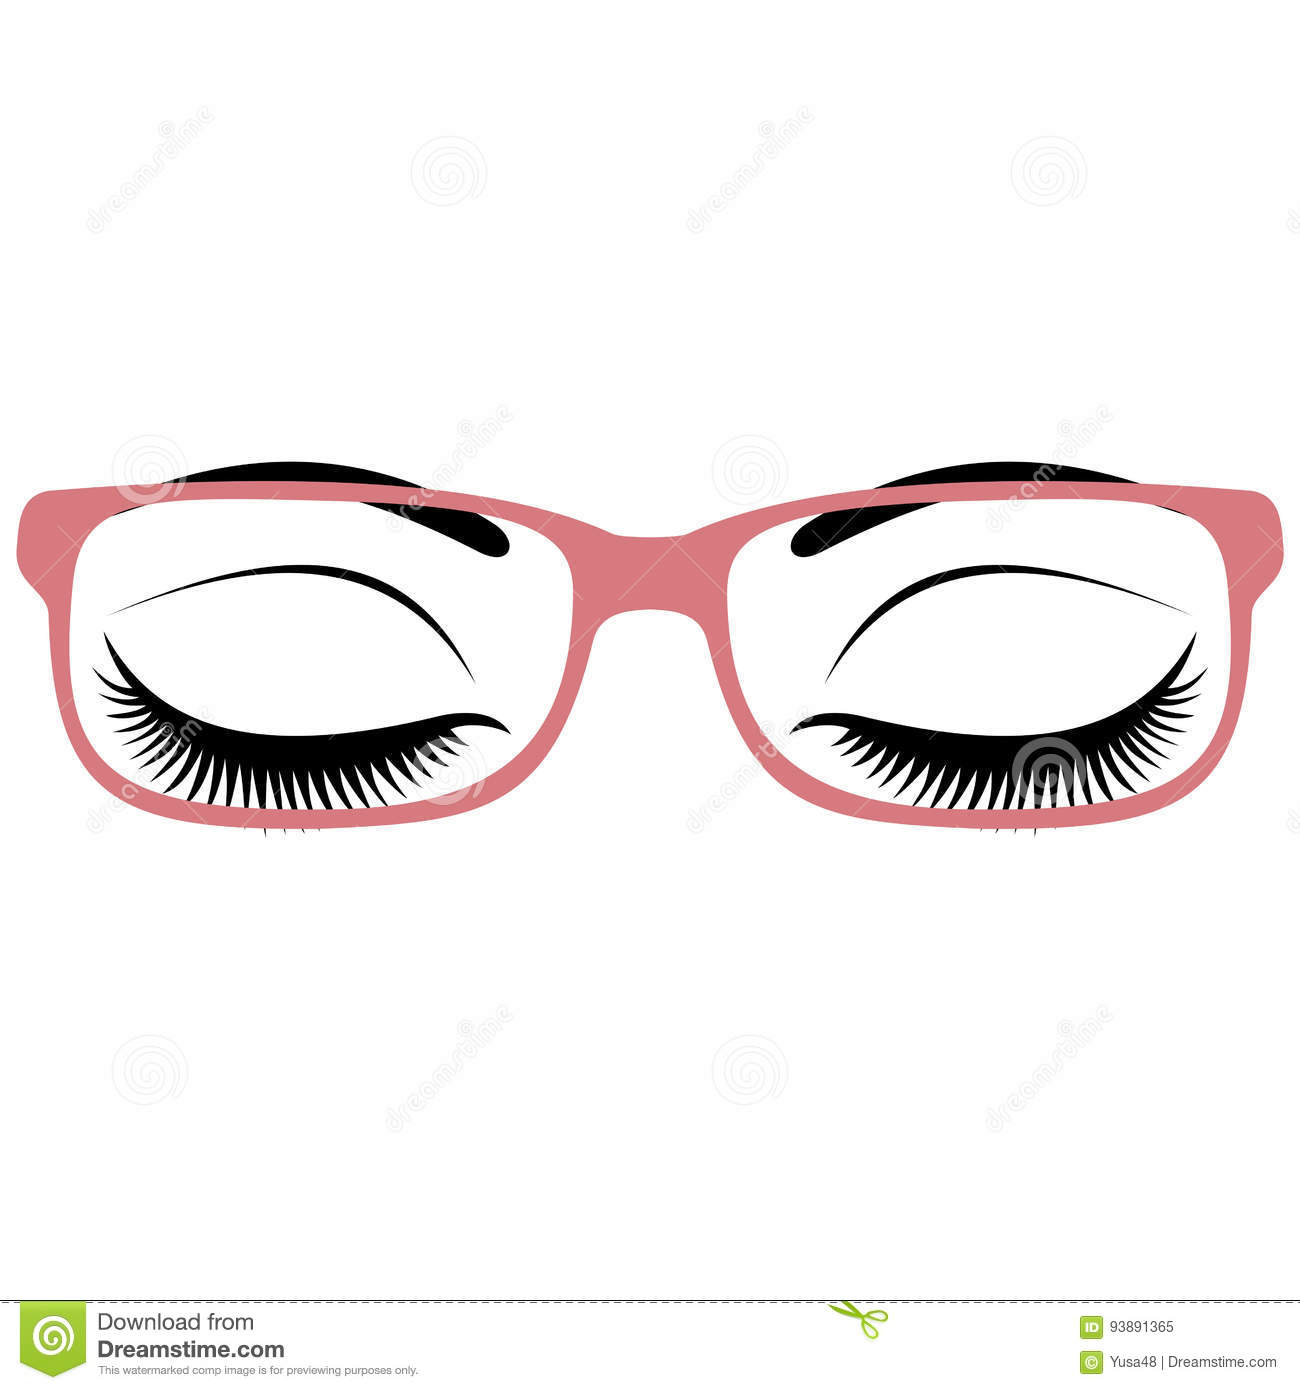 c25721aa3 Beautiful Women`s Closed Eyes With Glasses. Stock Vector ...